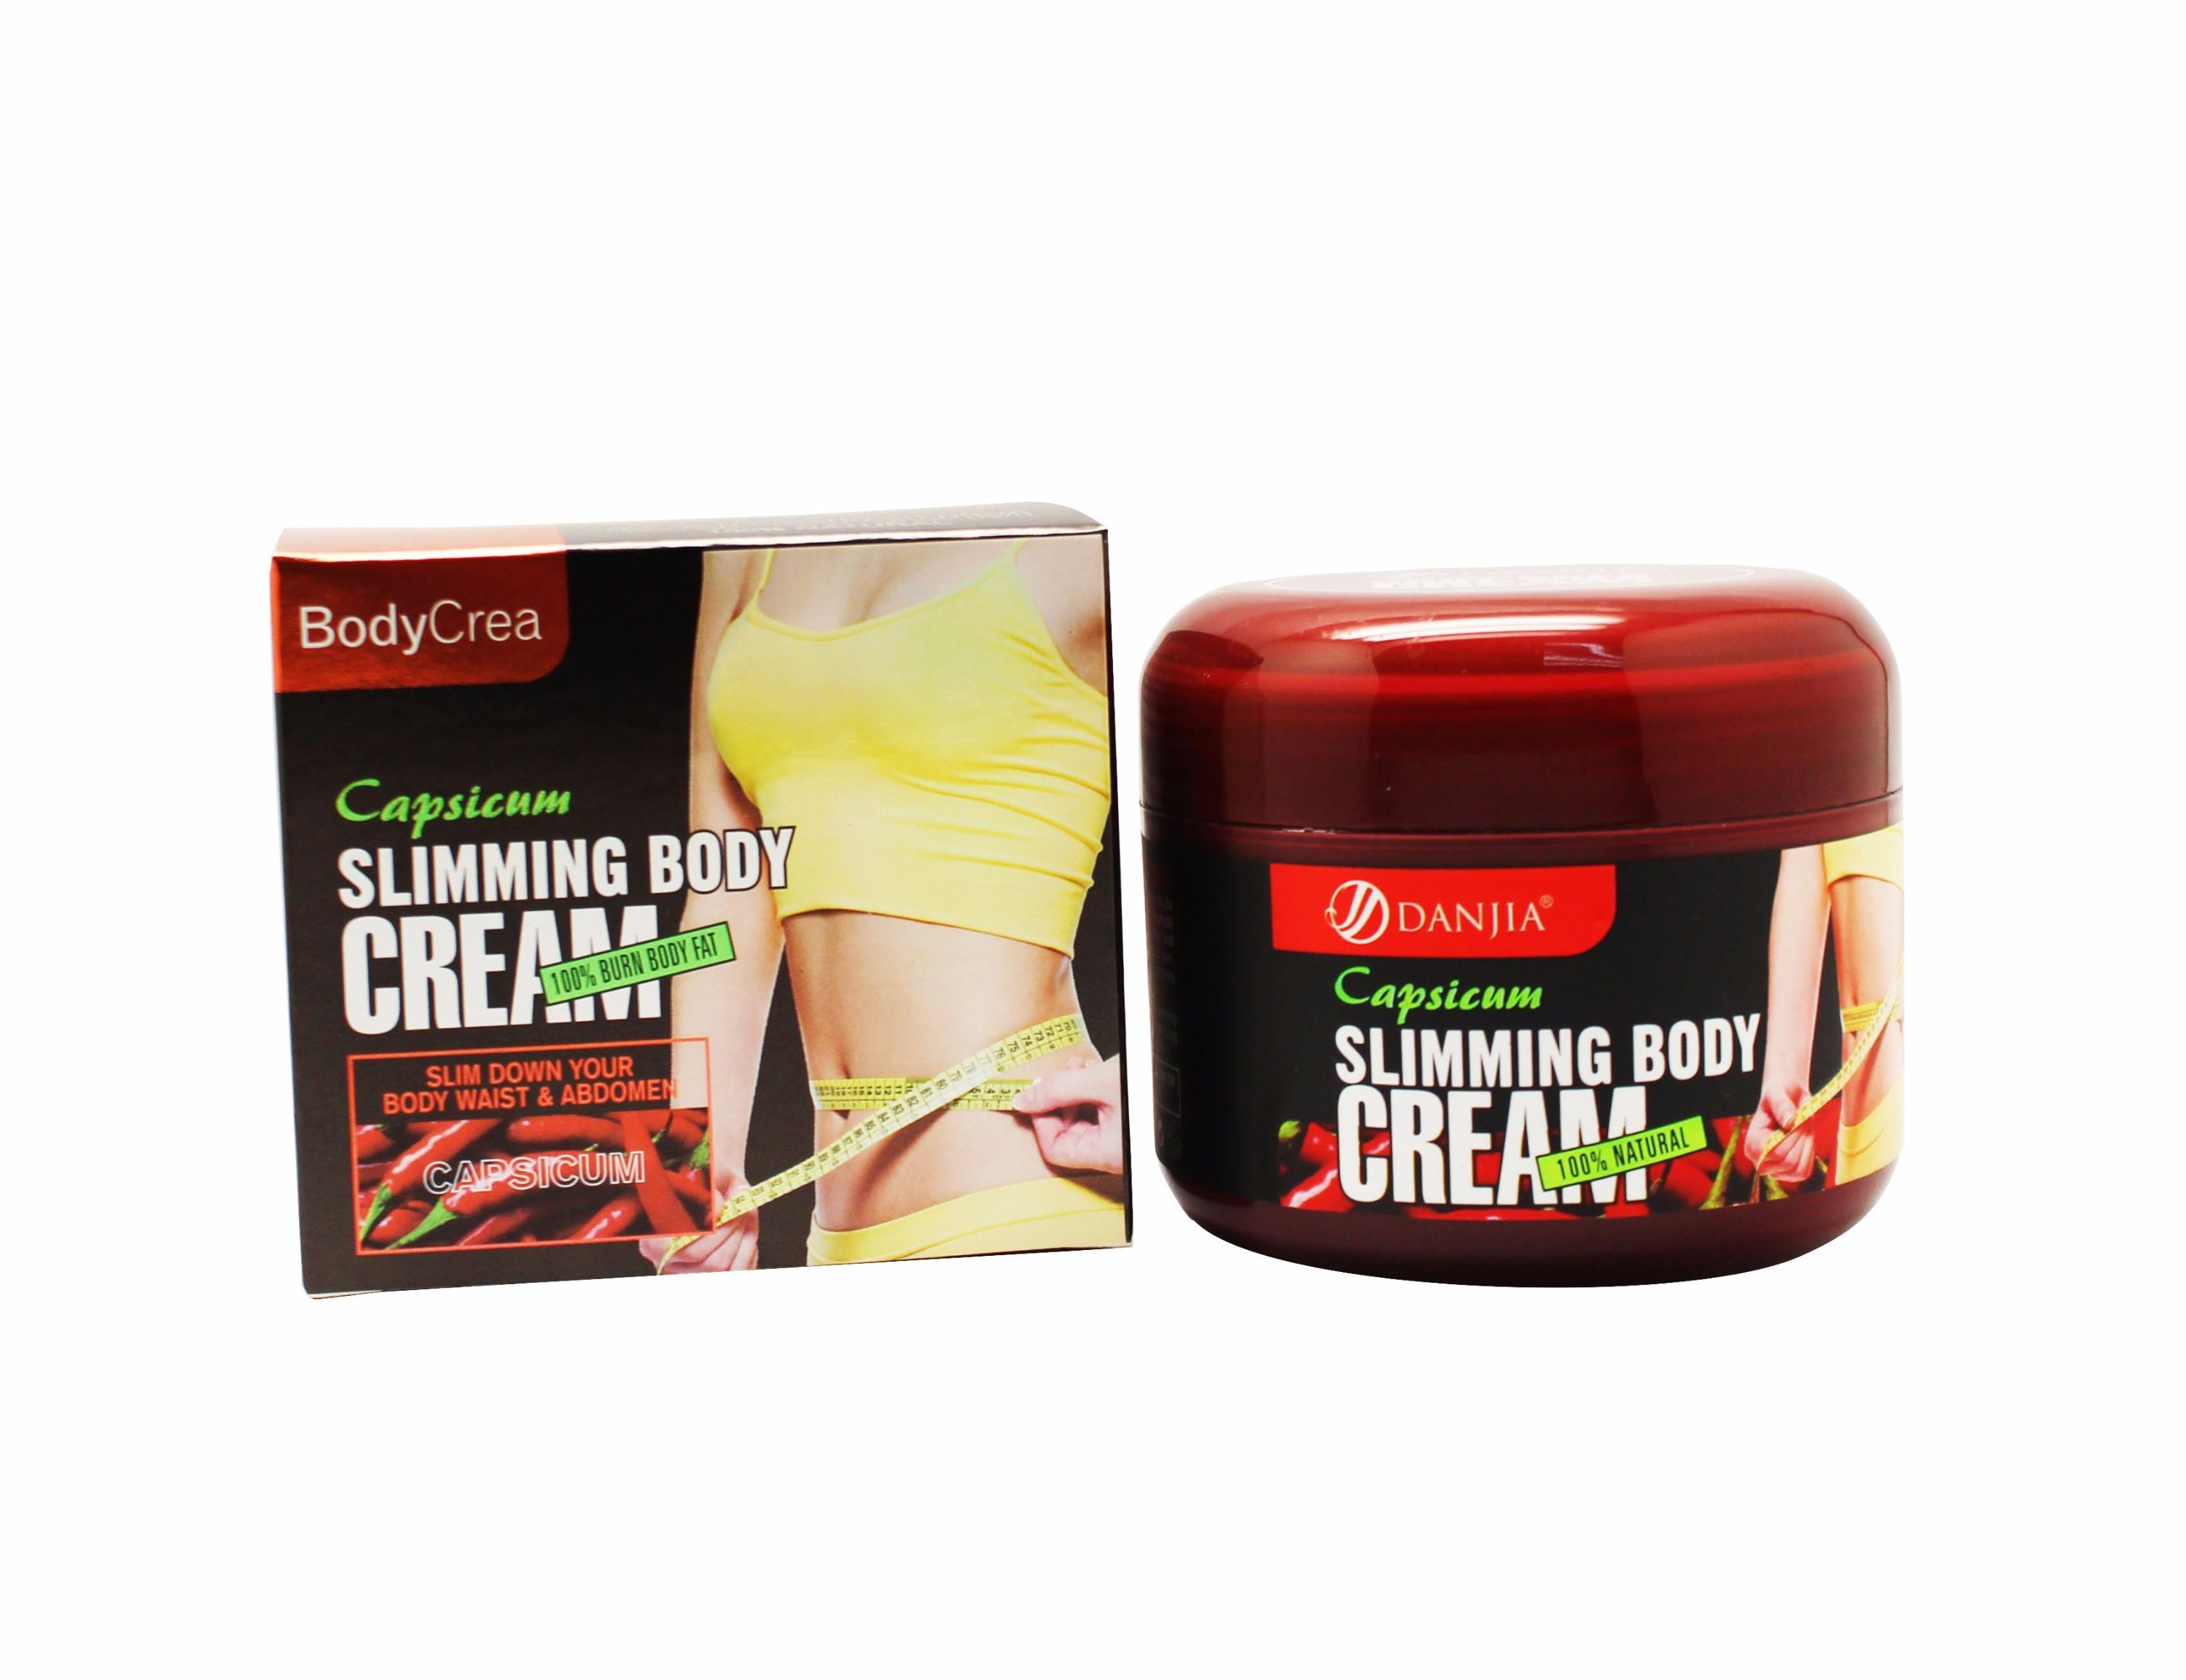 Capsicum Slimming Body Cream Beauty Products